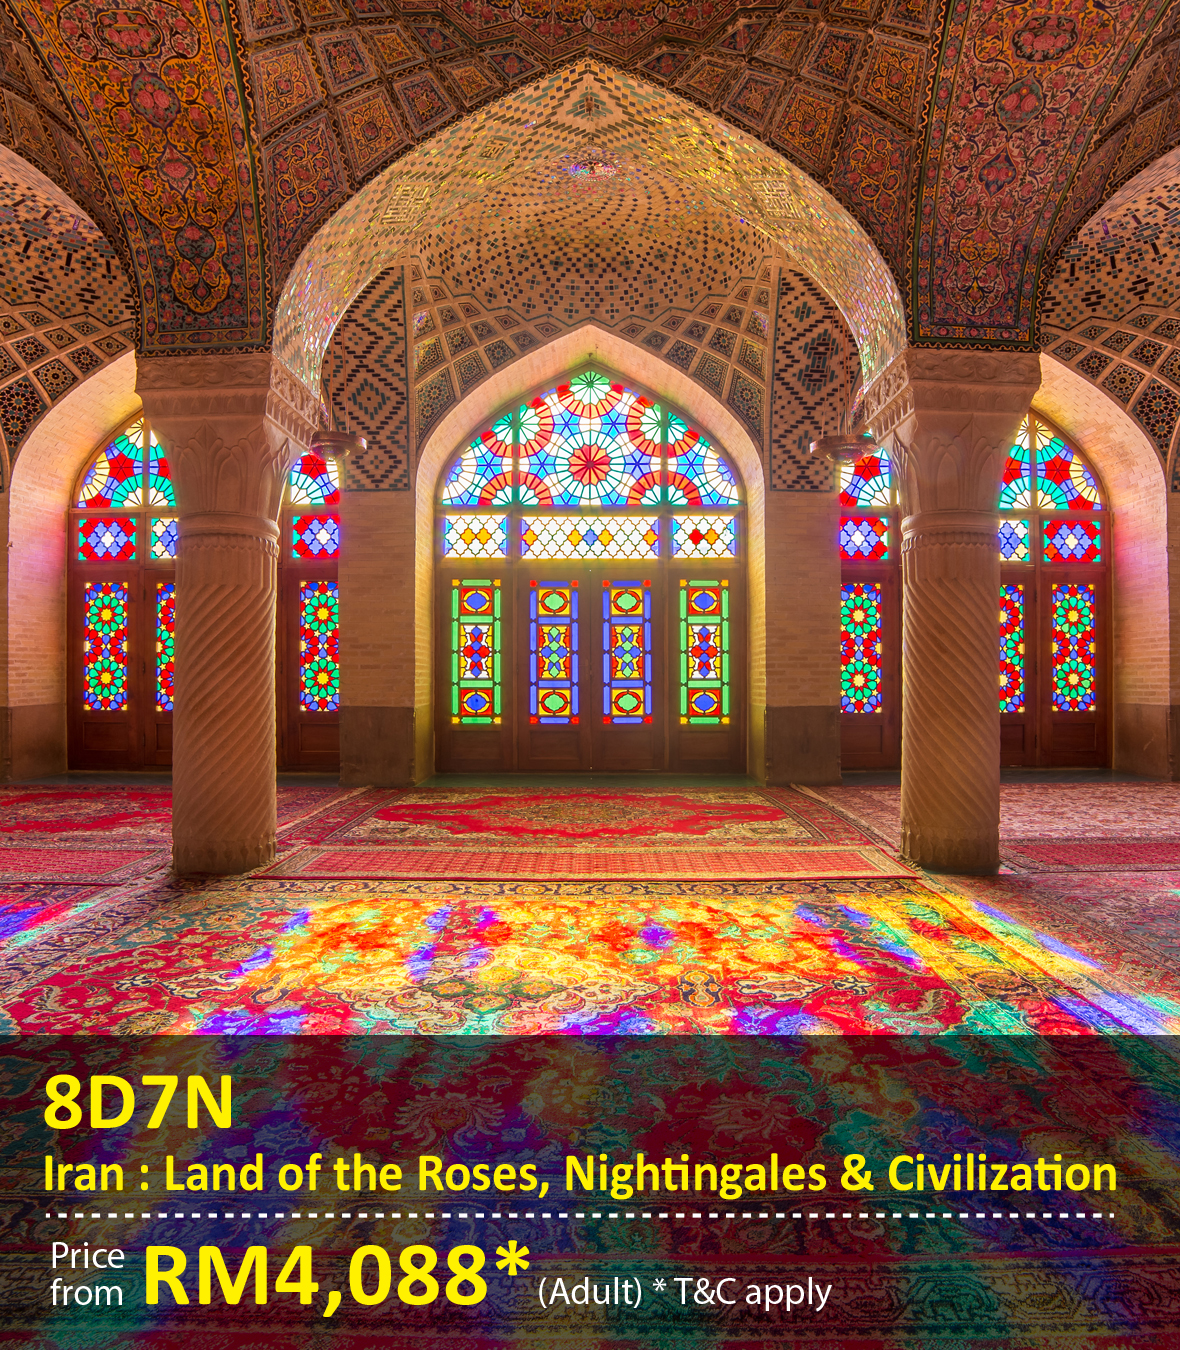 UOB Special Promo Package: 8 Days 7 Nights Iran; Land of the Roses, Nightingales and Civilization